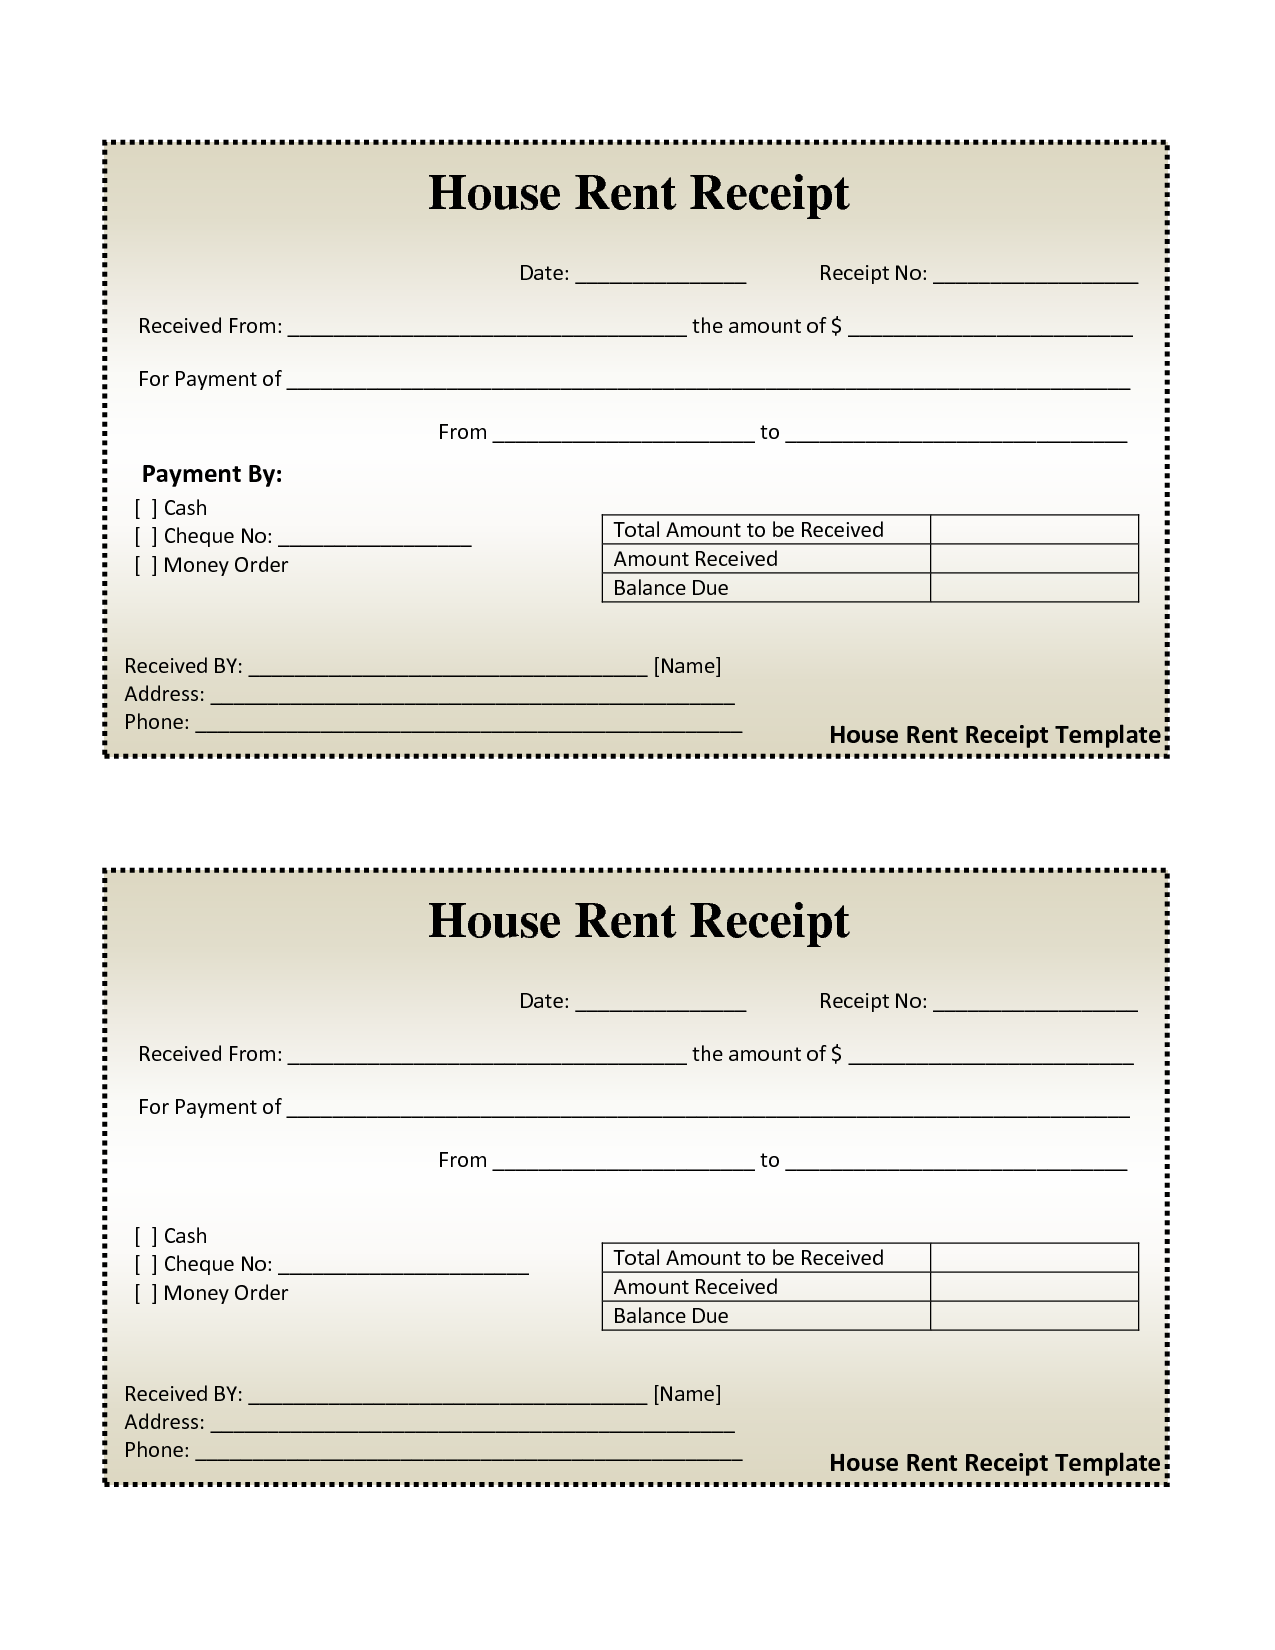 Free House Rental Invoice | House Rent Receipt Template   DOC